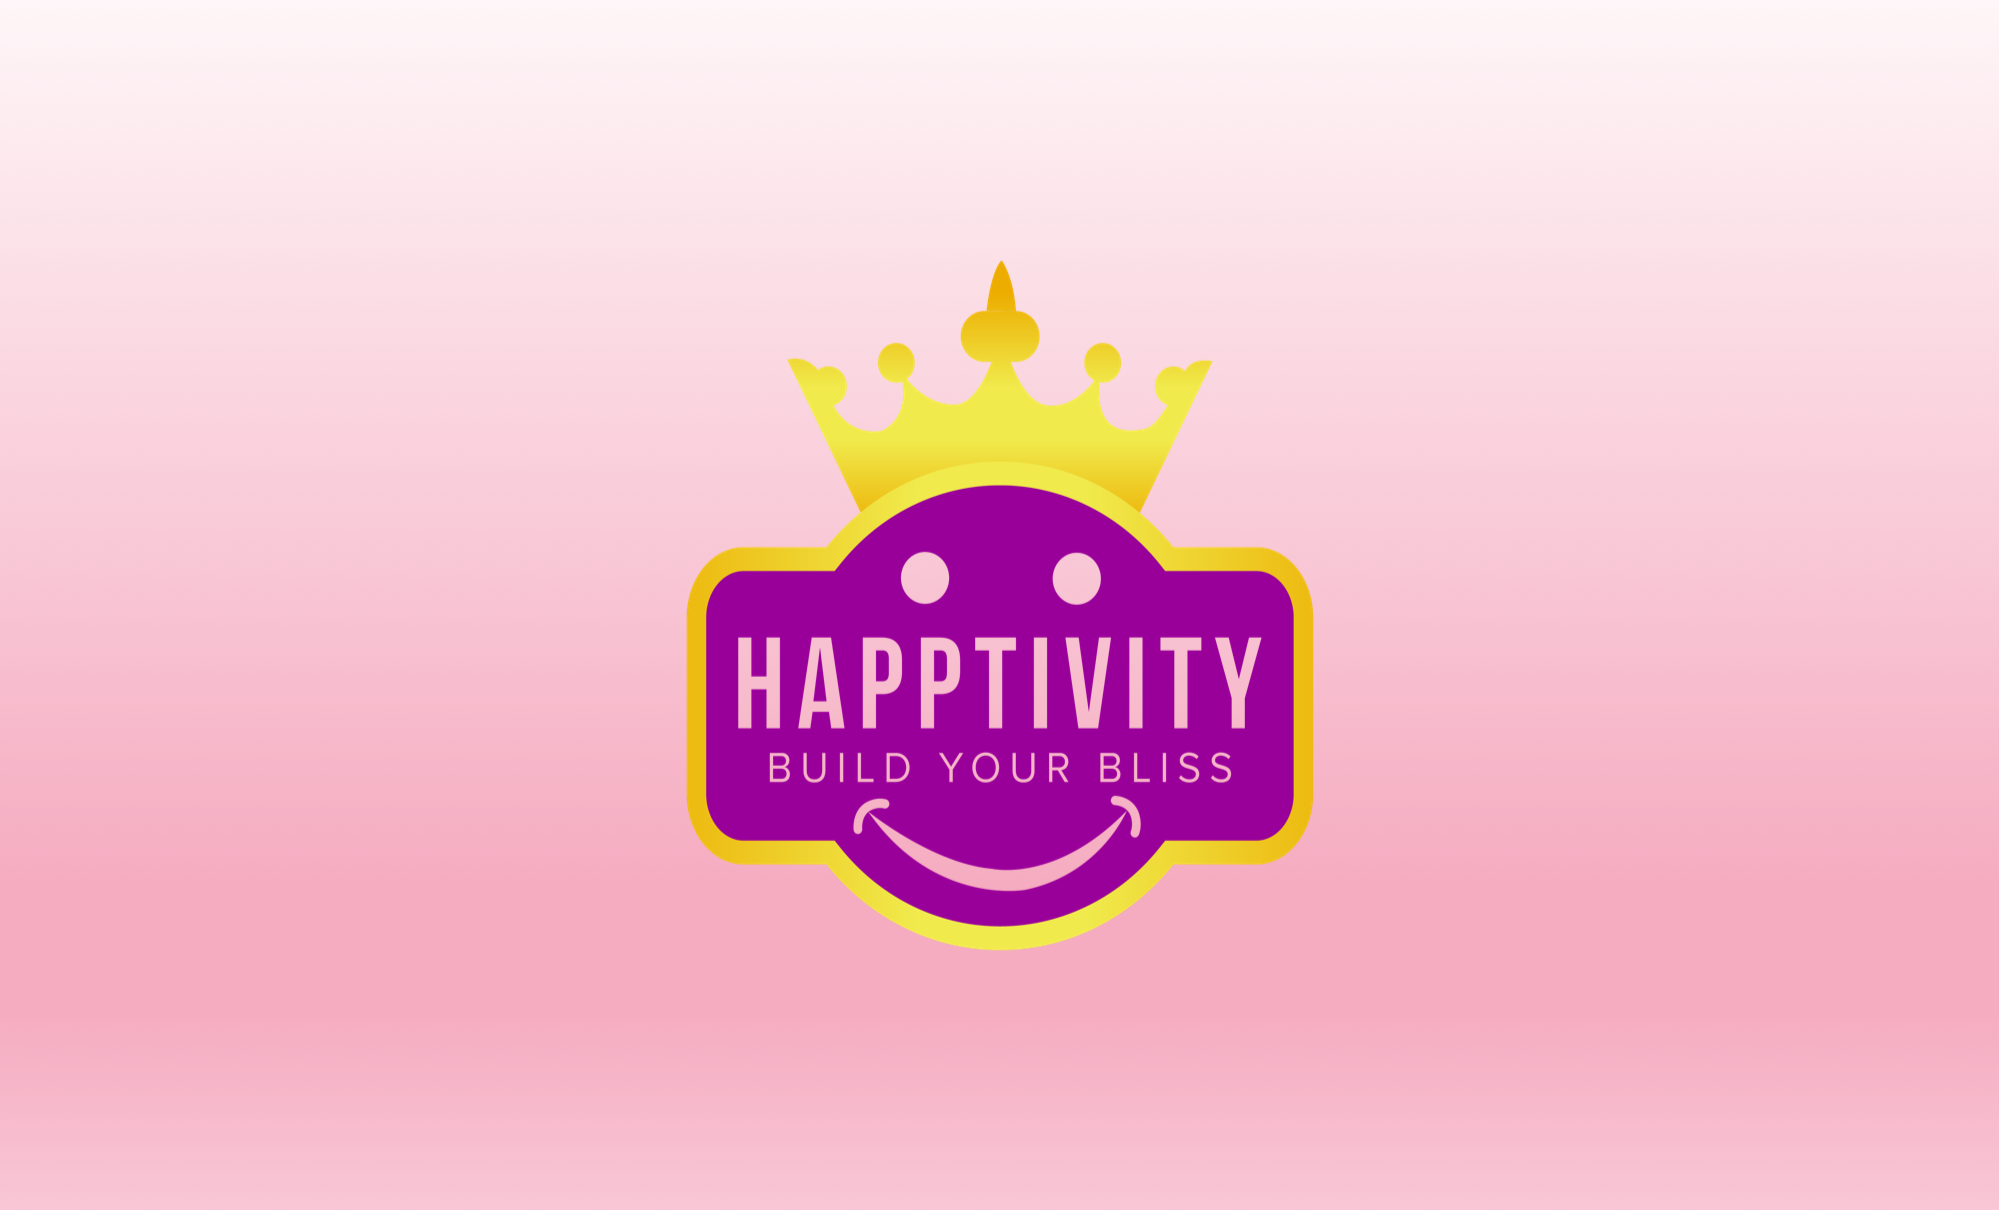 Happtivity